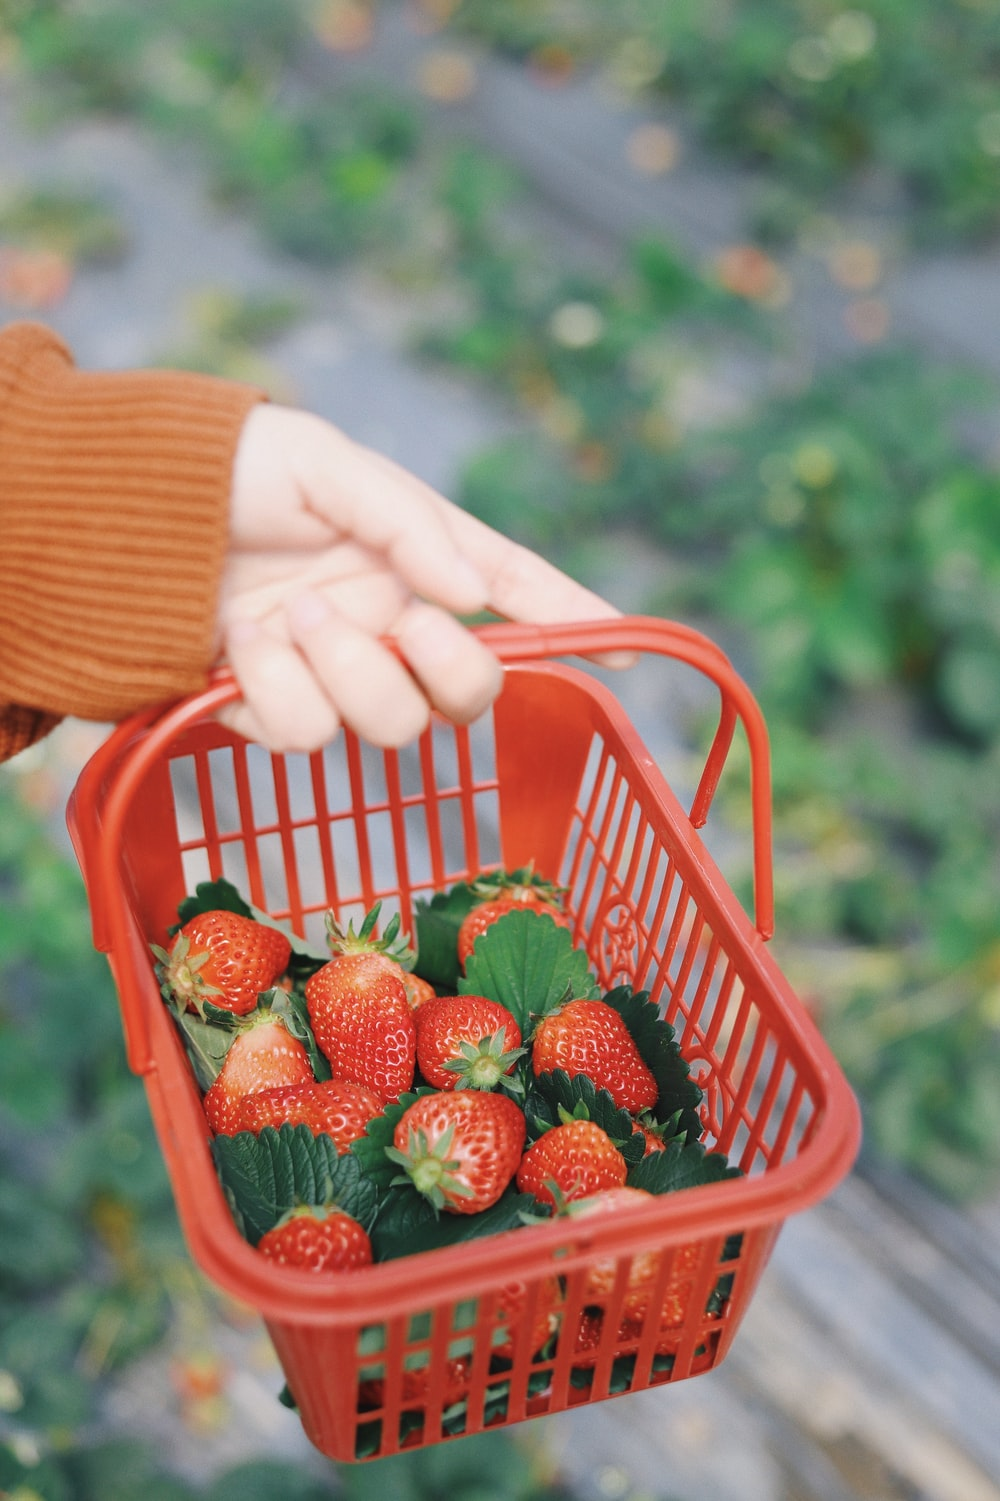 person carrying basket of strawberries